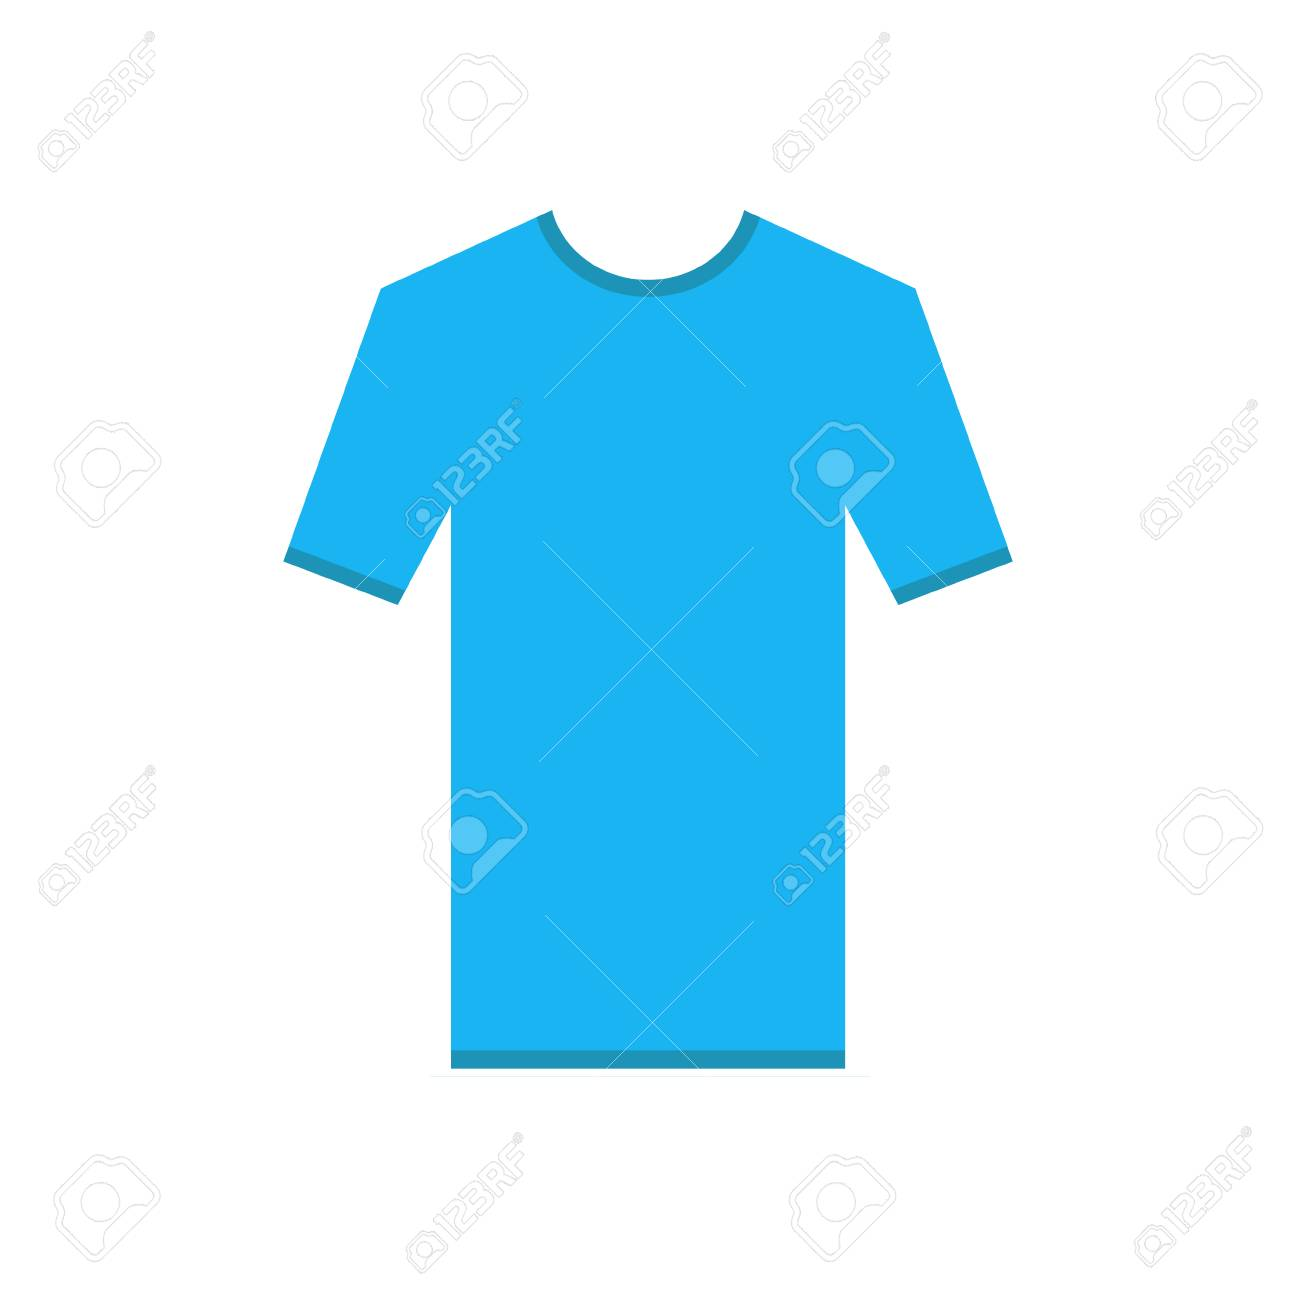 Light Blue Tshirt Simple Icon T Shirt Short Sleeve With Ribbons